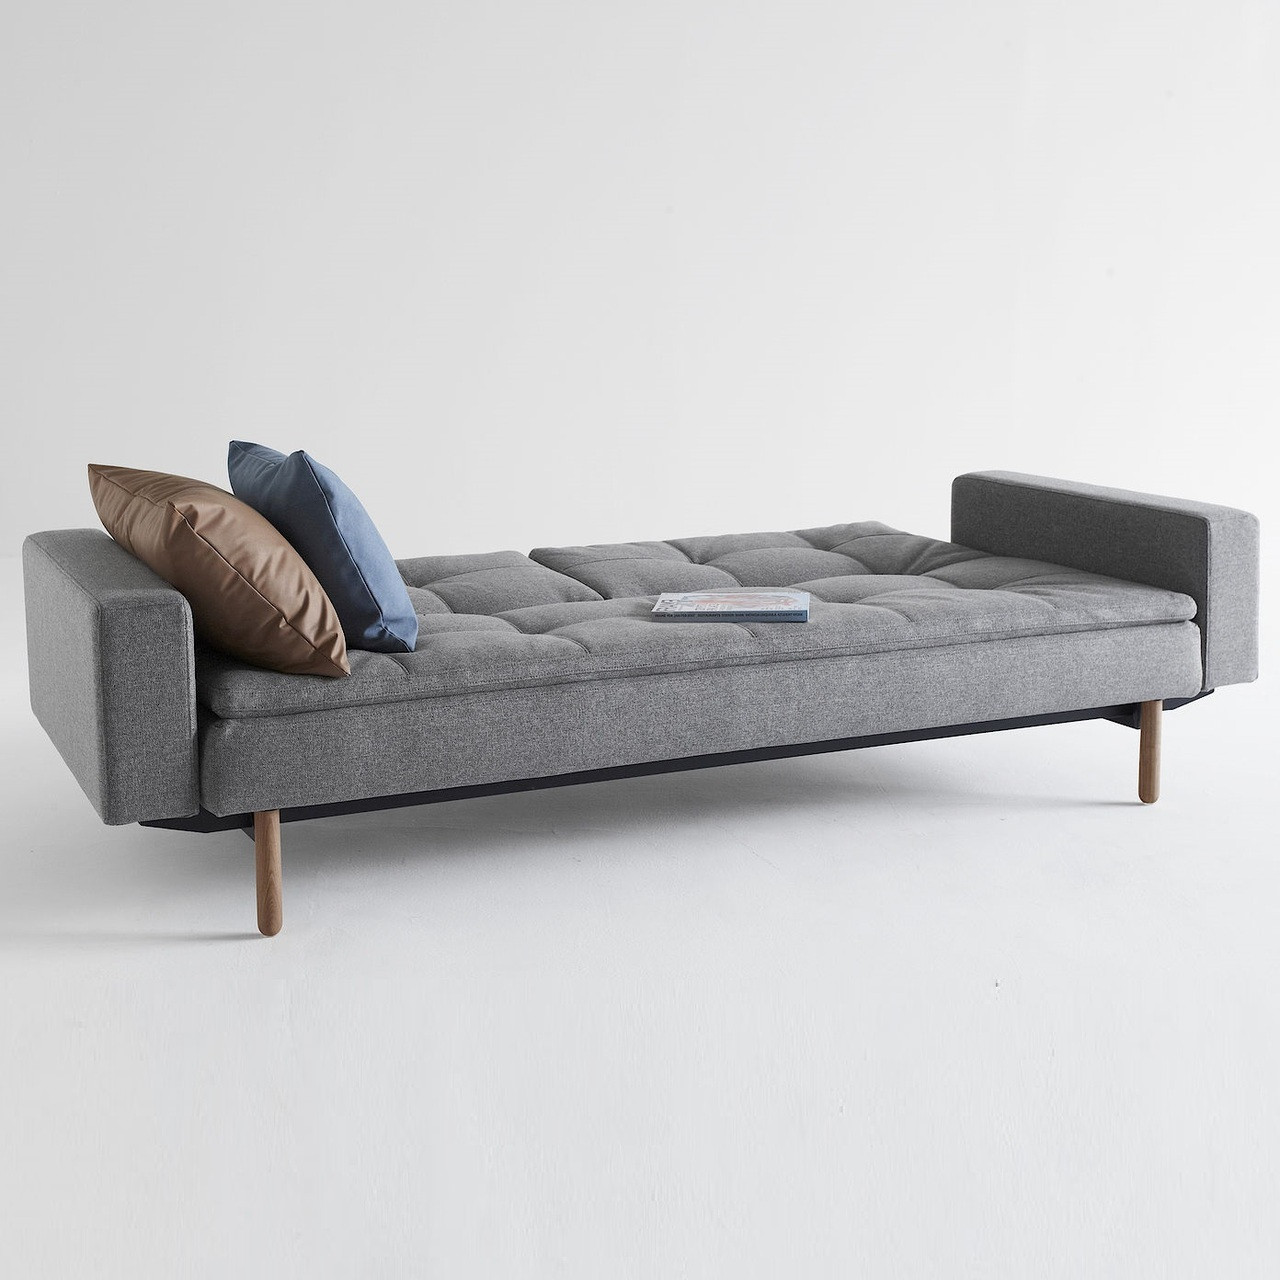 modern dublexo sleeper sofa bed with arms  zin home - innovation modern upholstered dublexo sleeper sofa bed with arms in greyfabric with